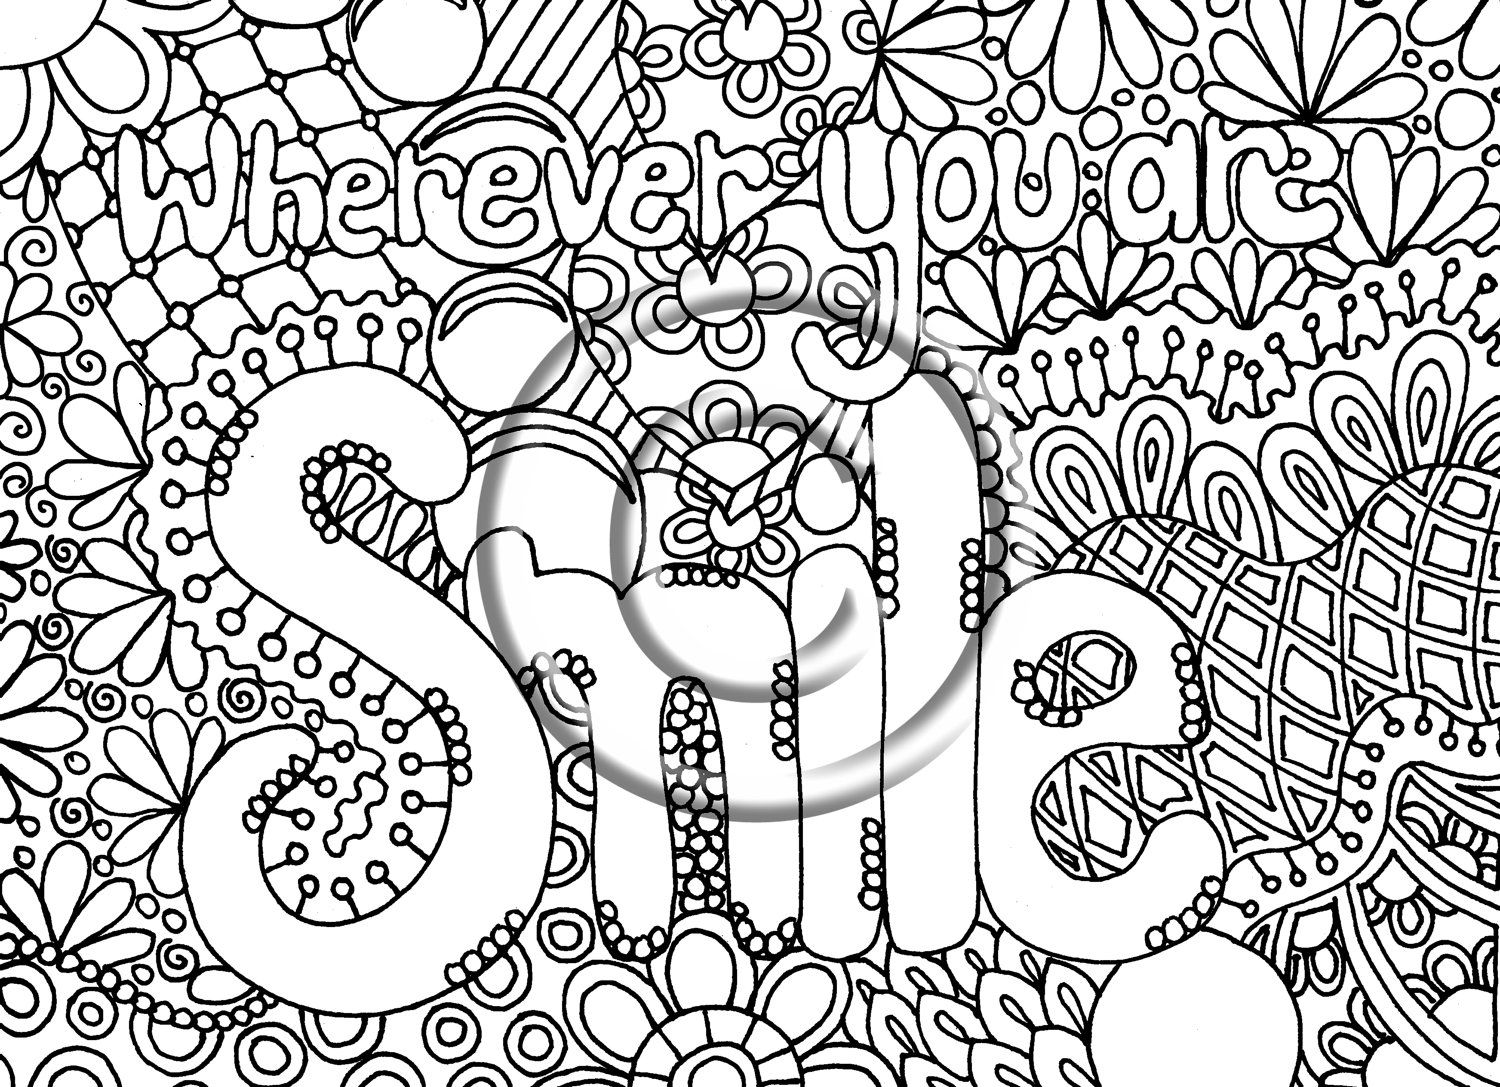 Digital download coloring page hand drawn zentangle for Abstract heart coloring pages